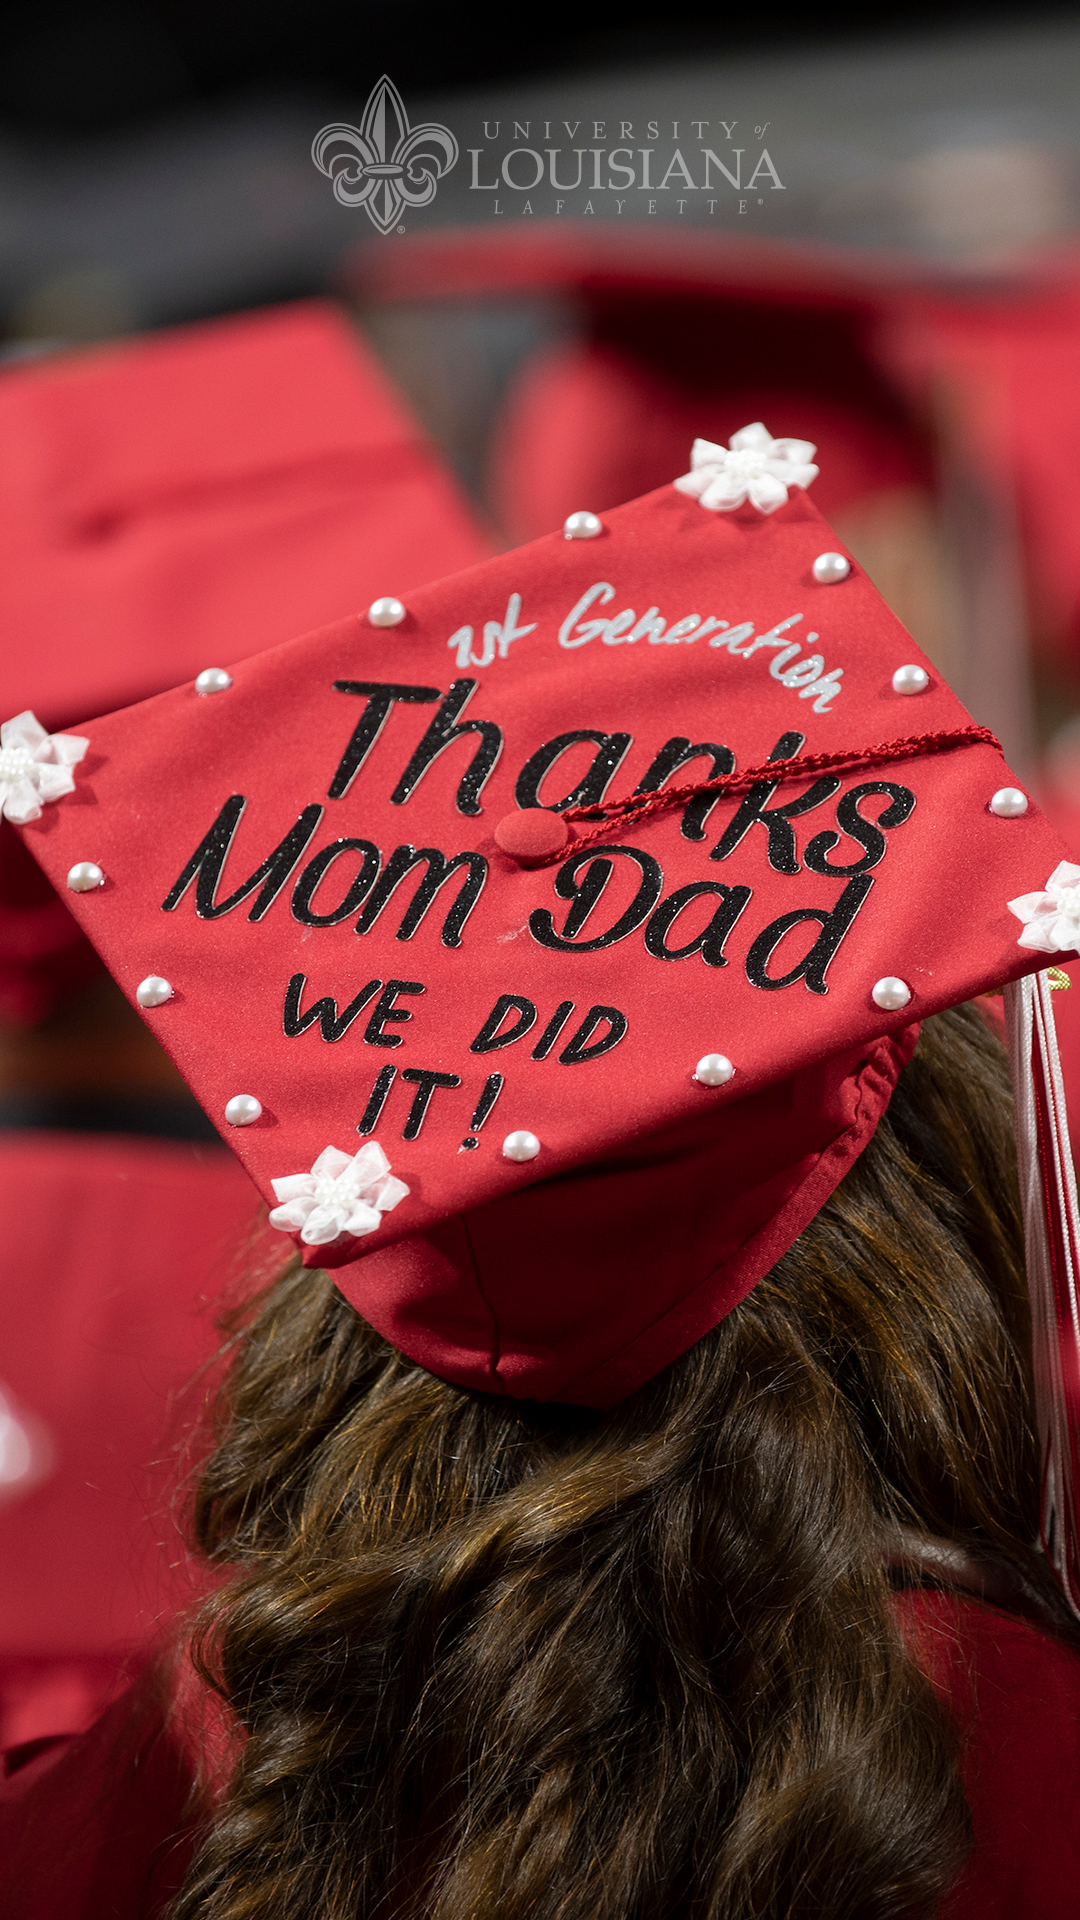 Image of graduation cap with the words